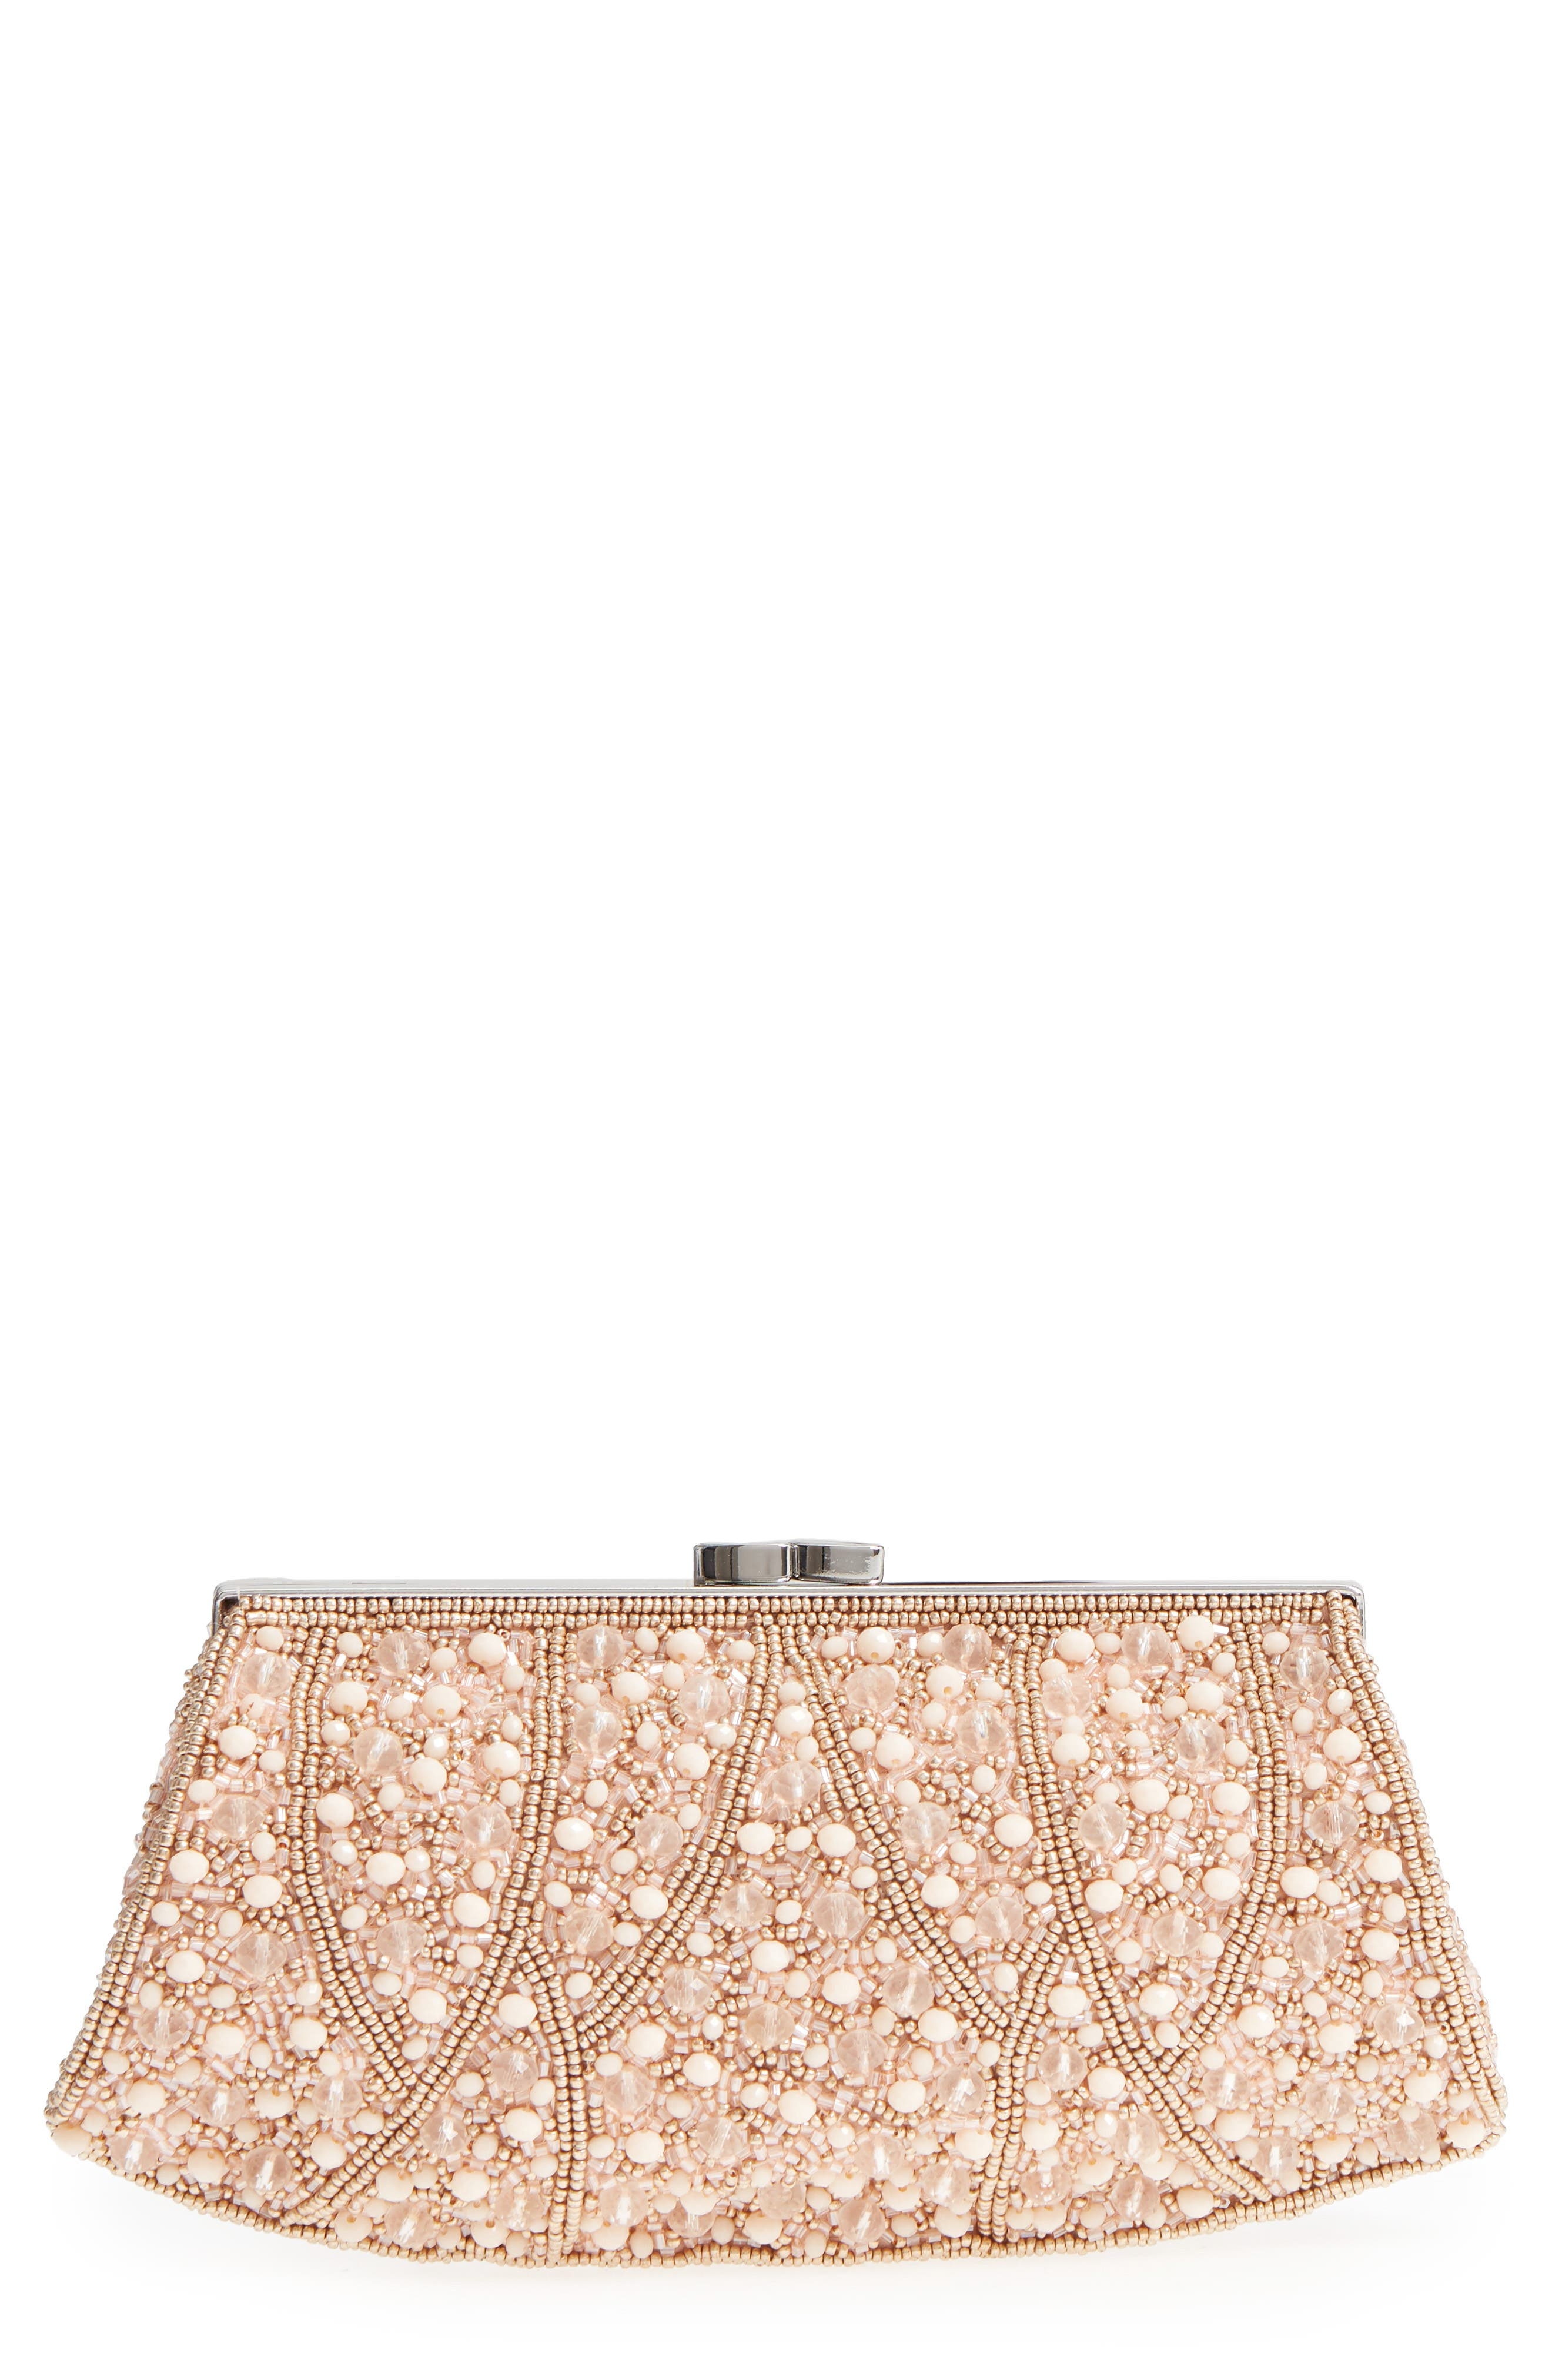 Beaded Rivoli Clutch,                         Main,                         color, Blush